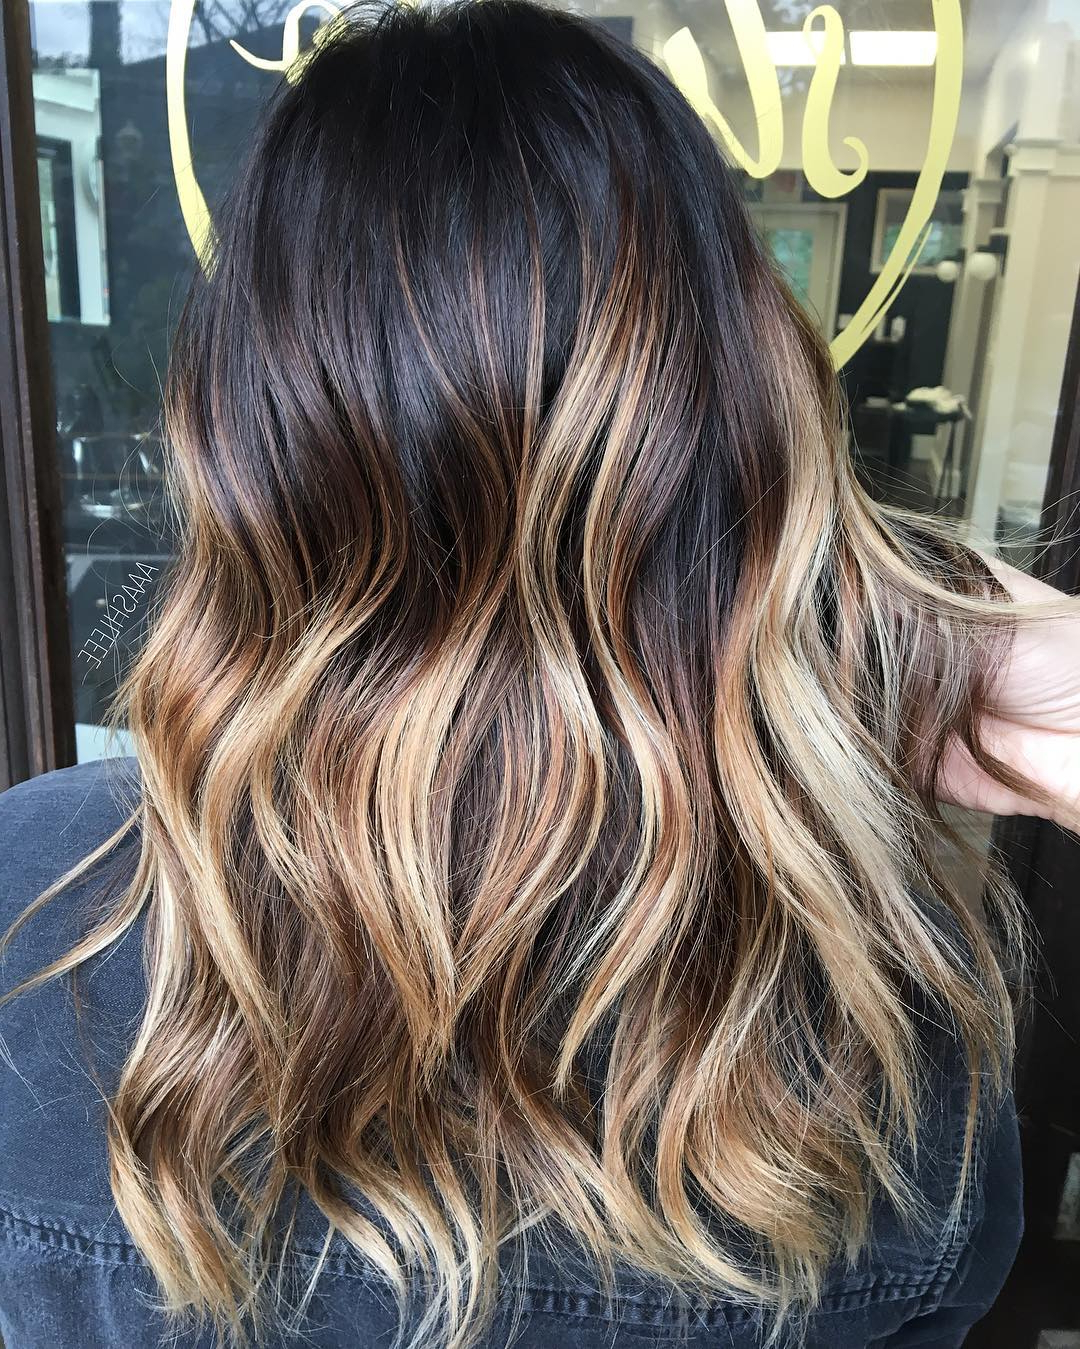 20 New Brown To Blonde Balayage Ideas Not Seen Before Within High Contrast Blonde Balayage Bob Hairstyles (View 4 of 20)